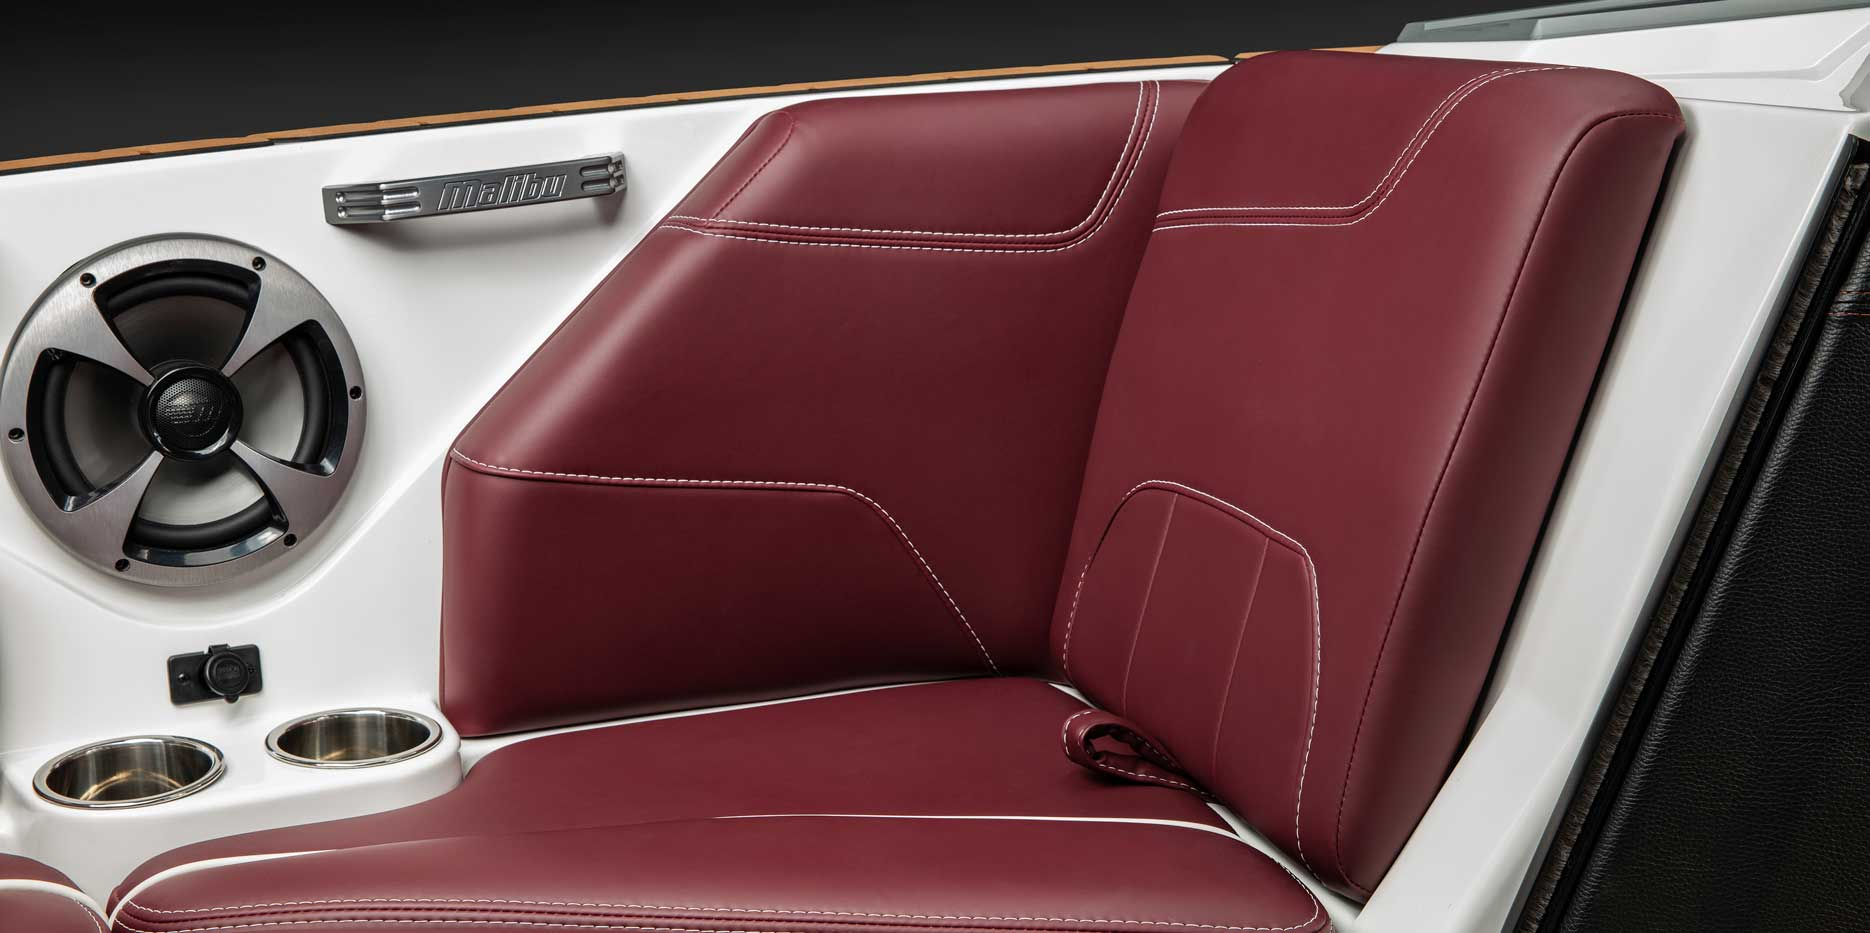 Plush seating for ultimate comfort.